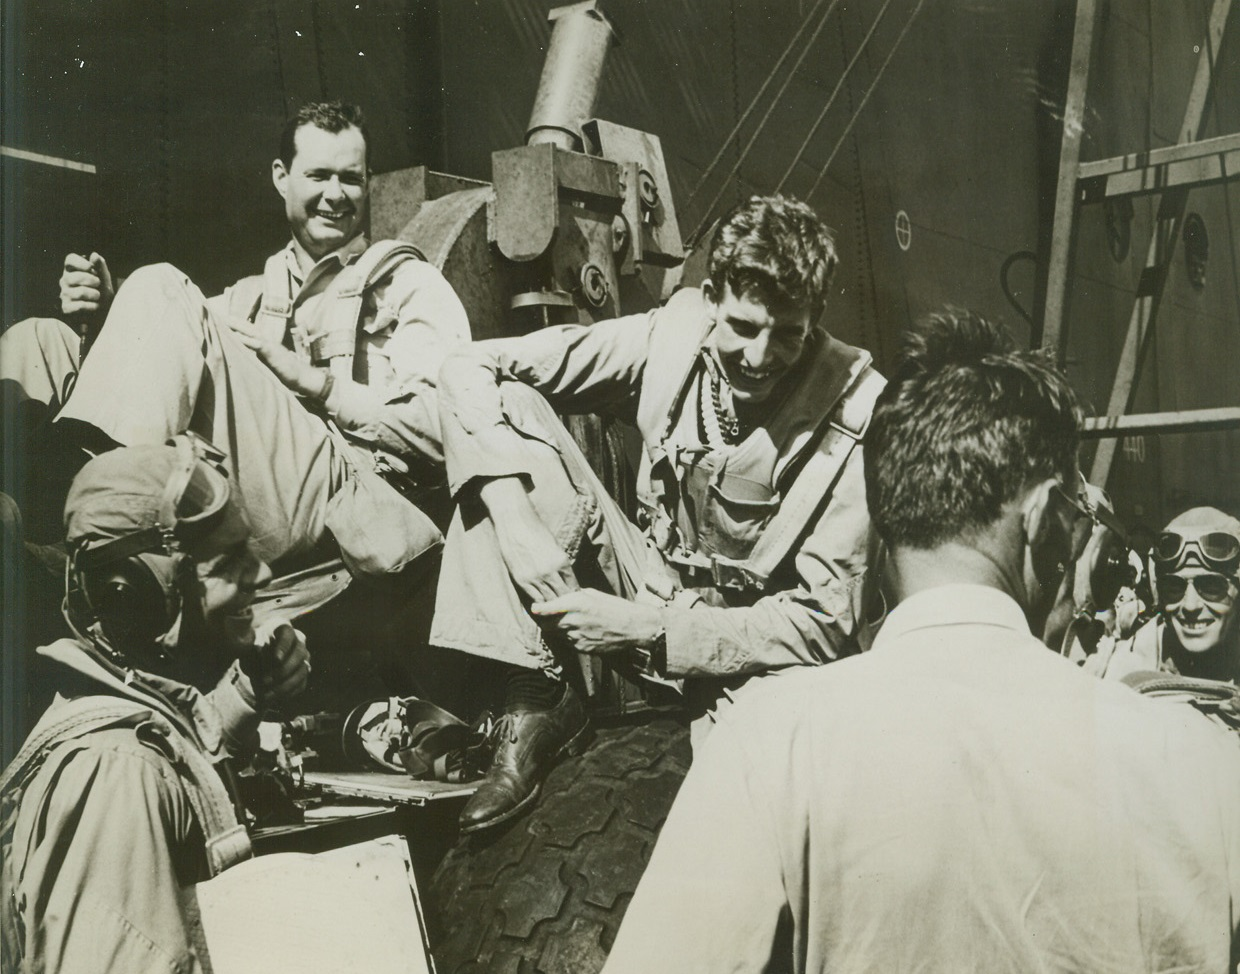 Rehashing Victory, 8/23/1944. At Sea – Relieved grins light the faces of air group 16 pilots as they discuss a victorious clash with Jap planes, after their return to their carrier.  Seated (top) are; (left to right) Comdr. P.D. Buie of Nashville, GA; and Ensign W.J. Seyfferle, Cincinnati, O.  Lower left: Ensign Edward G. Wendorf, West (co), Texas.  With back toward camera: Comdr. L.B. Southerland, USN.  Extreme right: Lt. (jg) Frances M. Fleming, Portland, Ore. Credit line (official U.S. Navy photo from ACME);